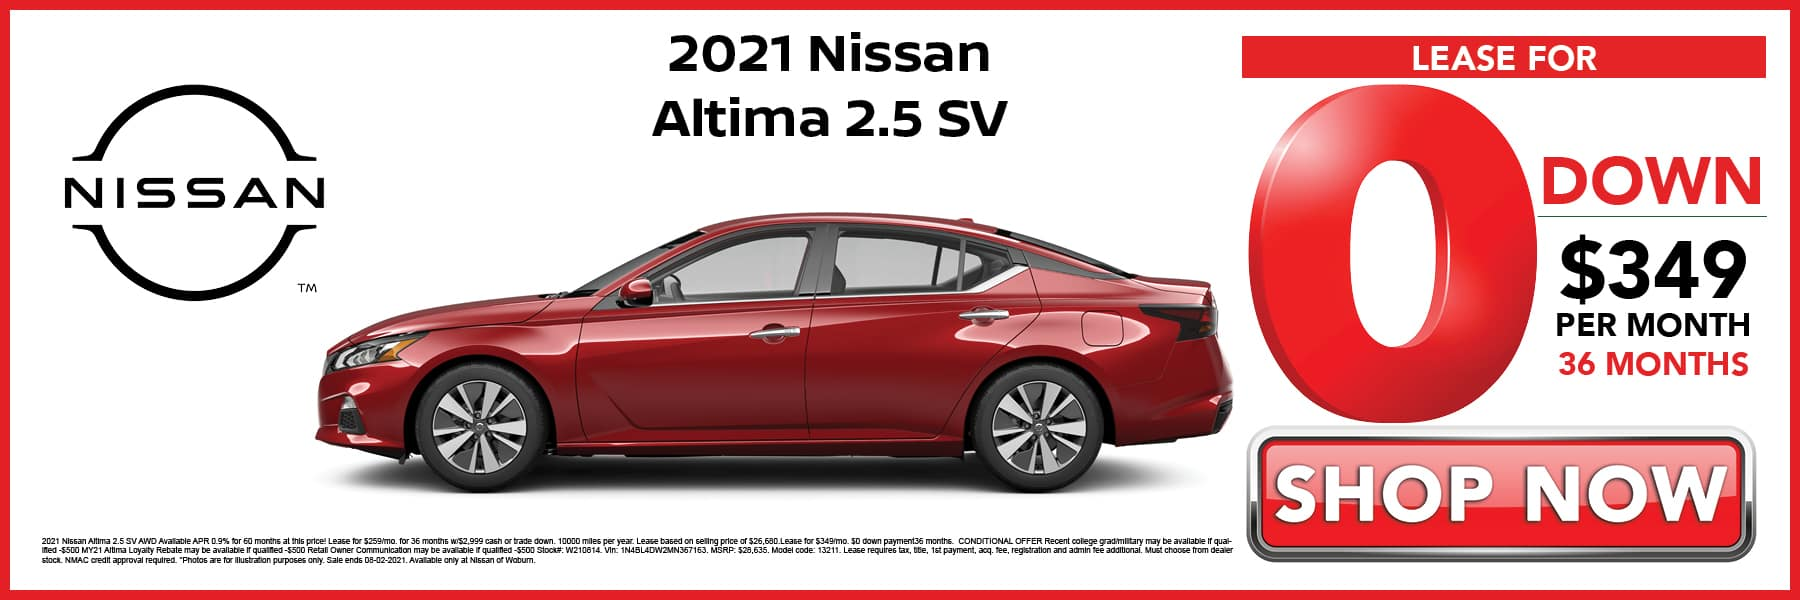 2021 Nissan Altima SV Lease for 0 Down then $349 per Month for 36 Months